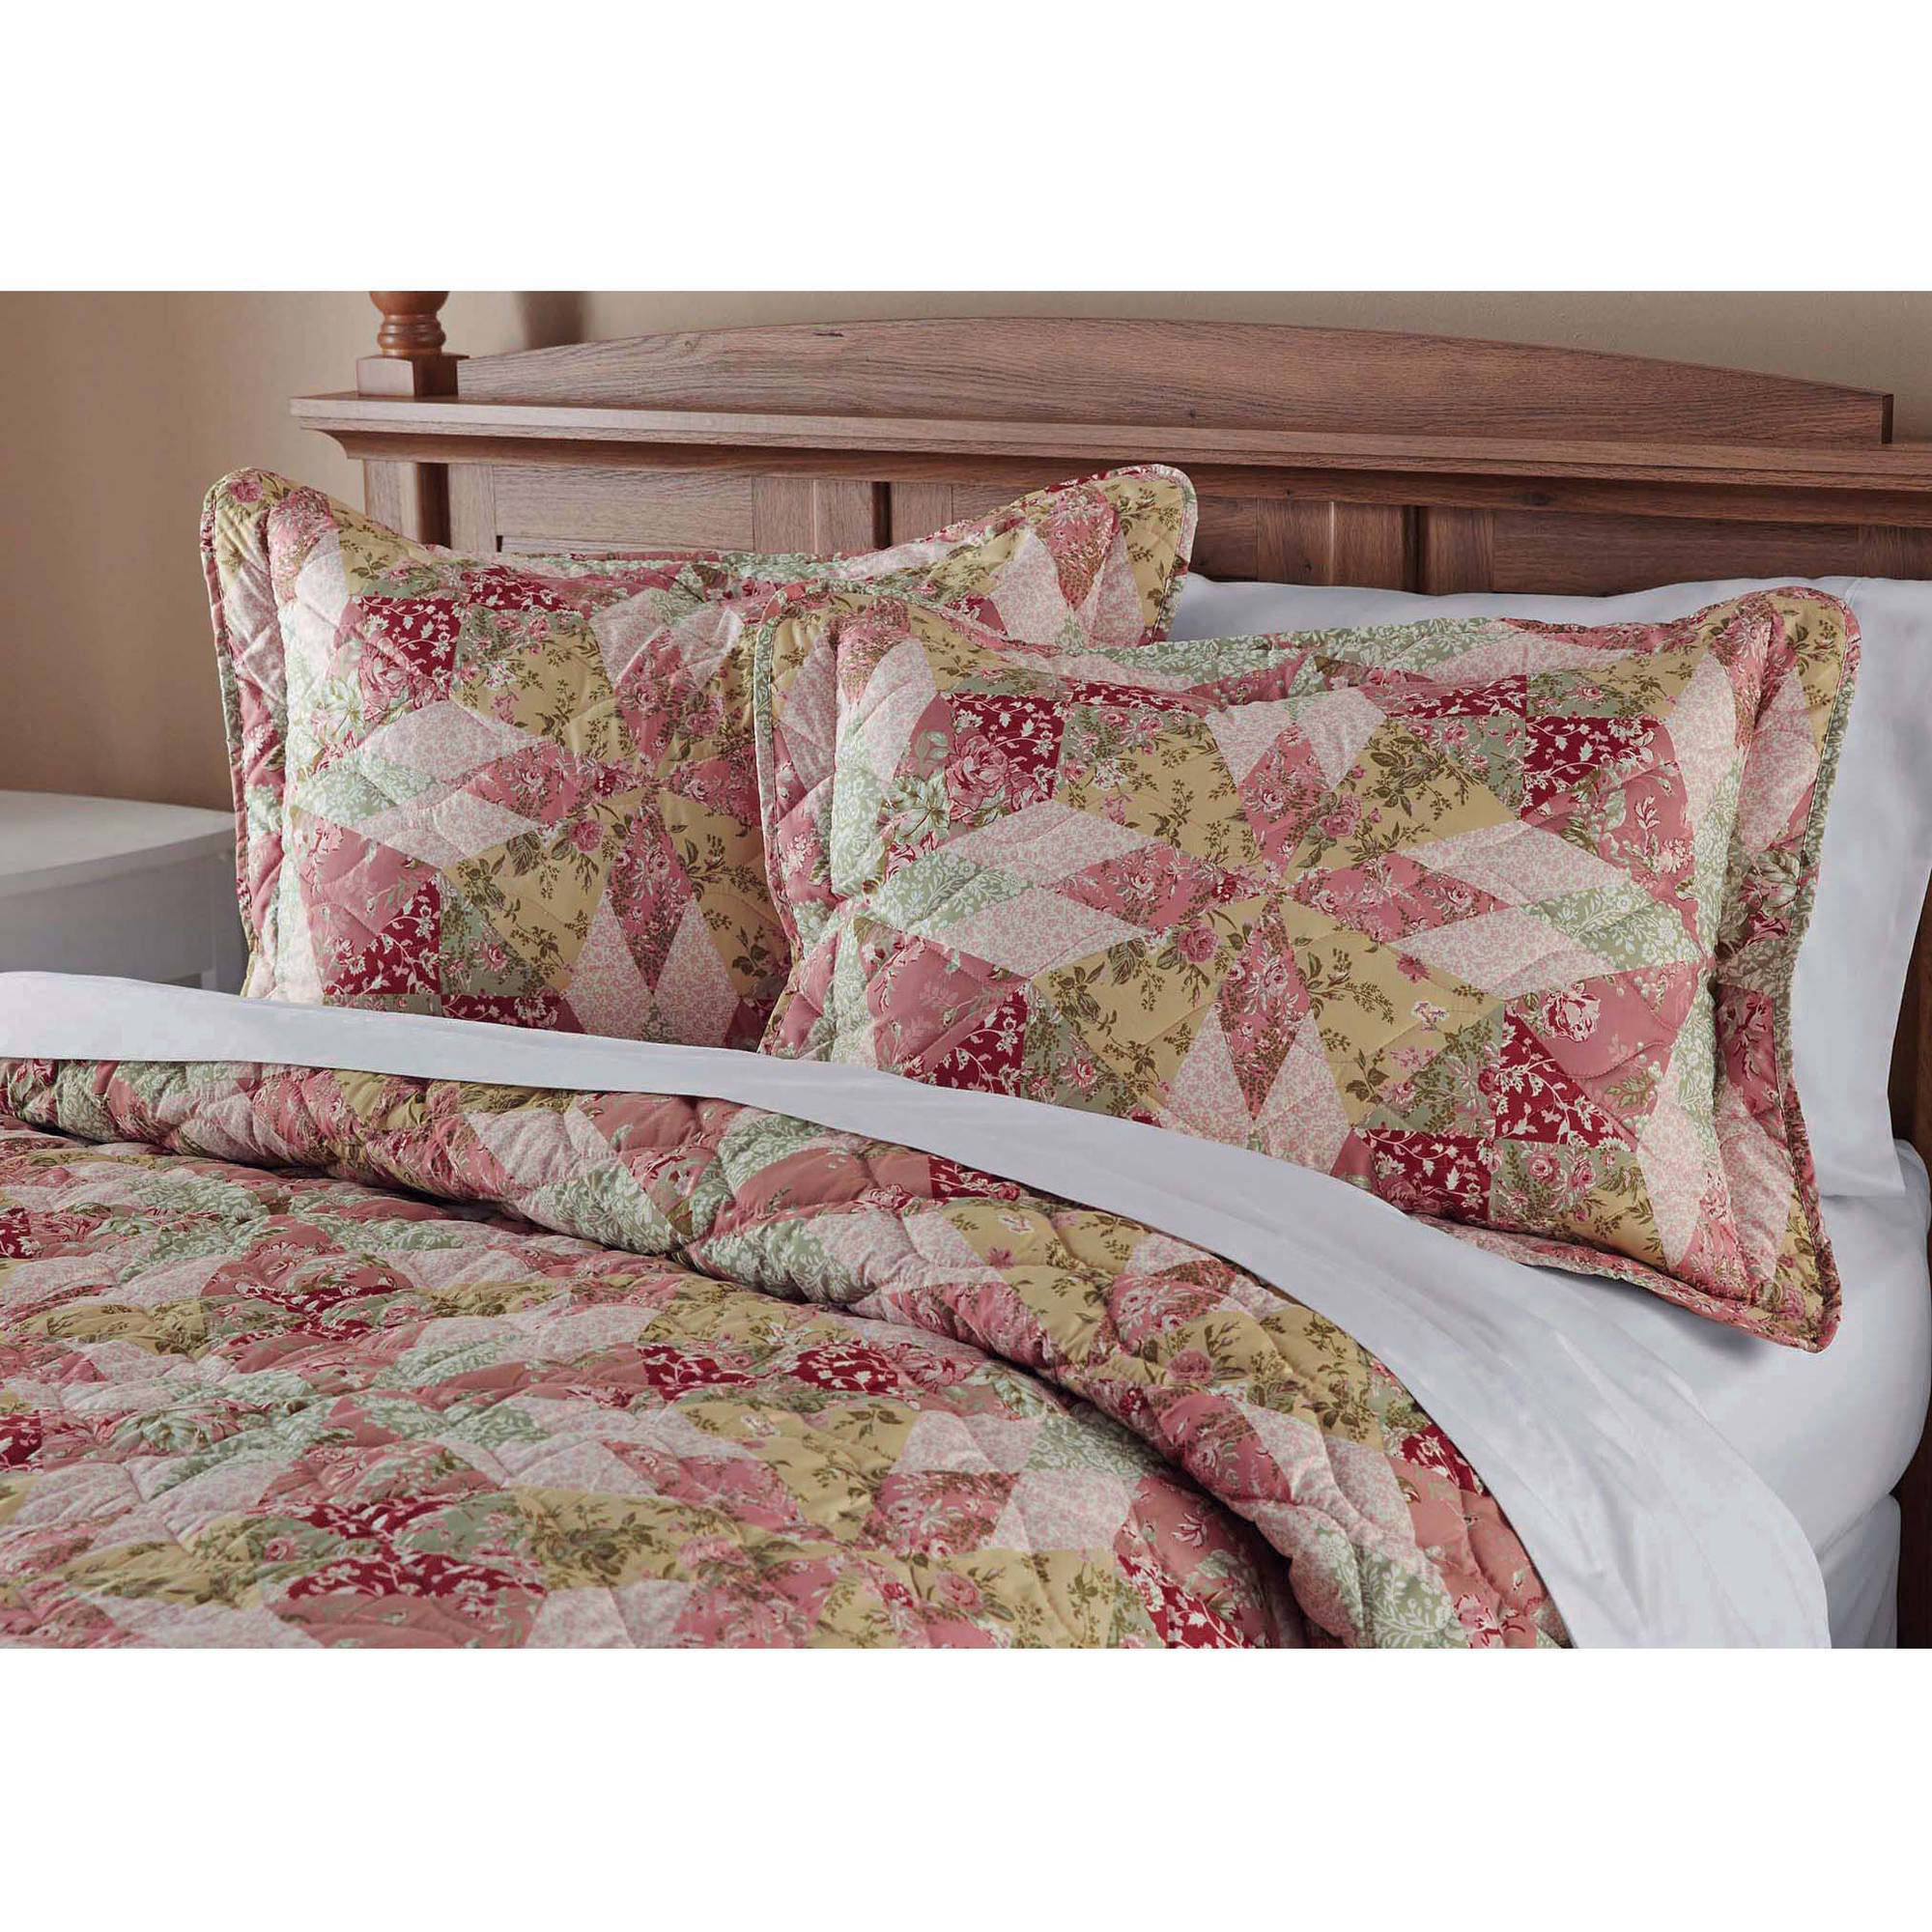 Mainstays Antique Garden Bedding Quilt by